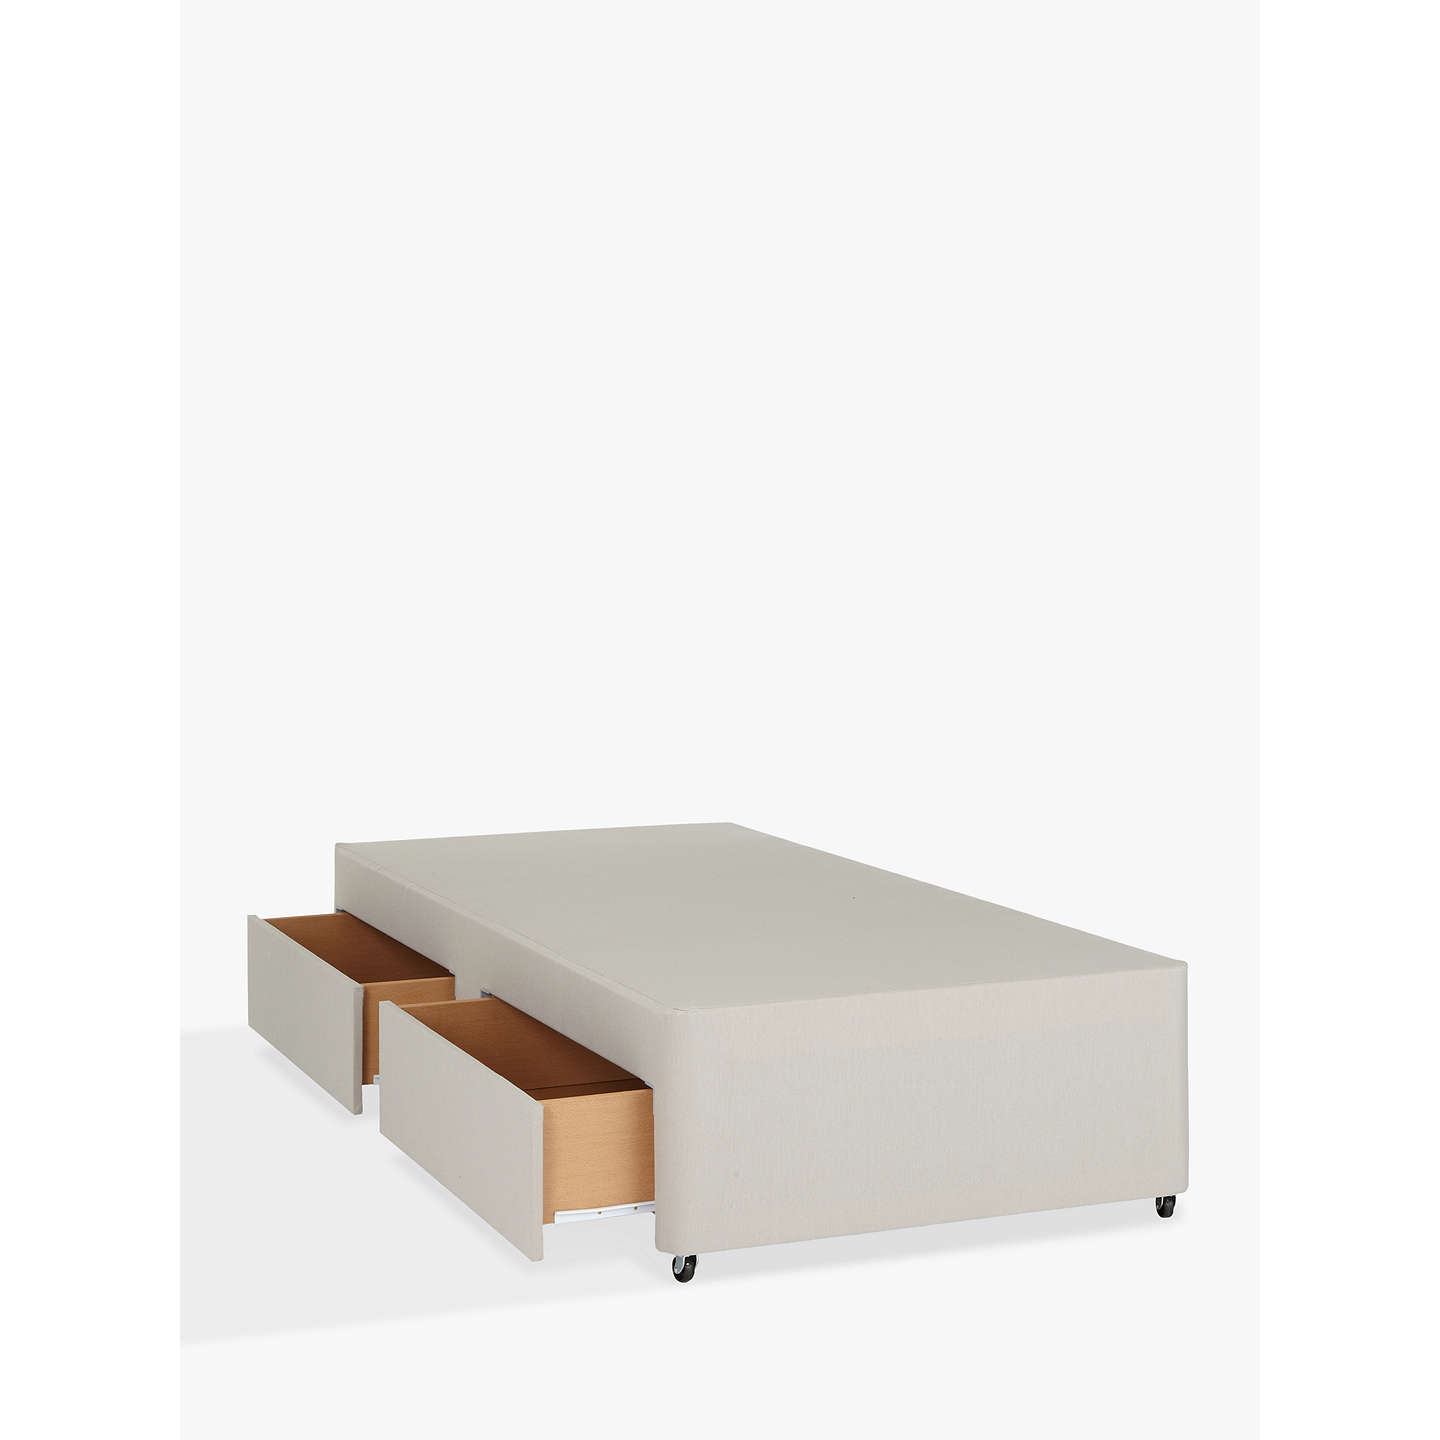 John lewis non sprung two drawer divan storage bed pebble for Single two drawer divan bed